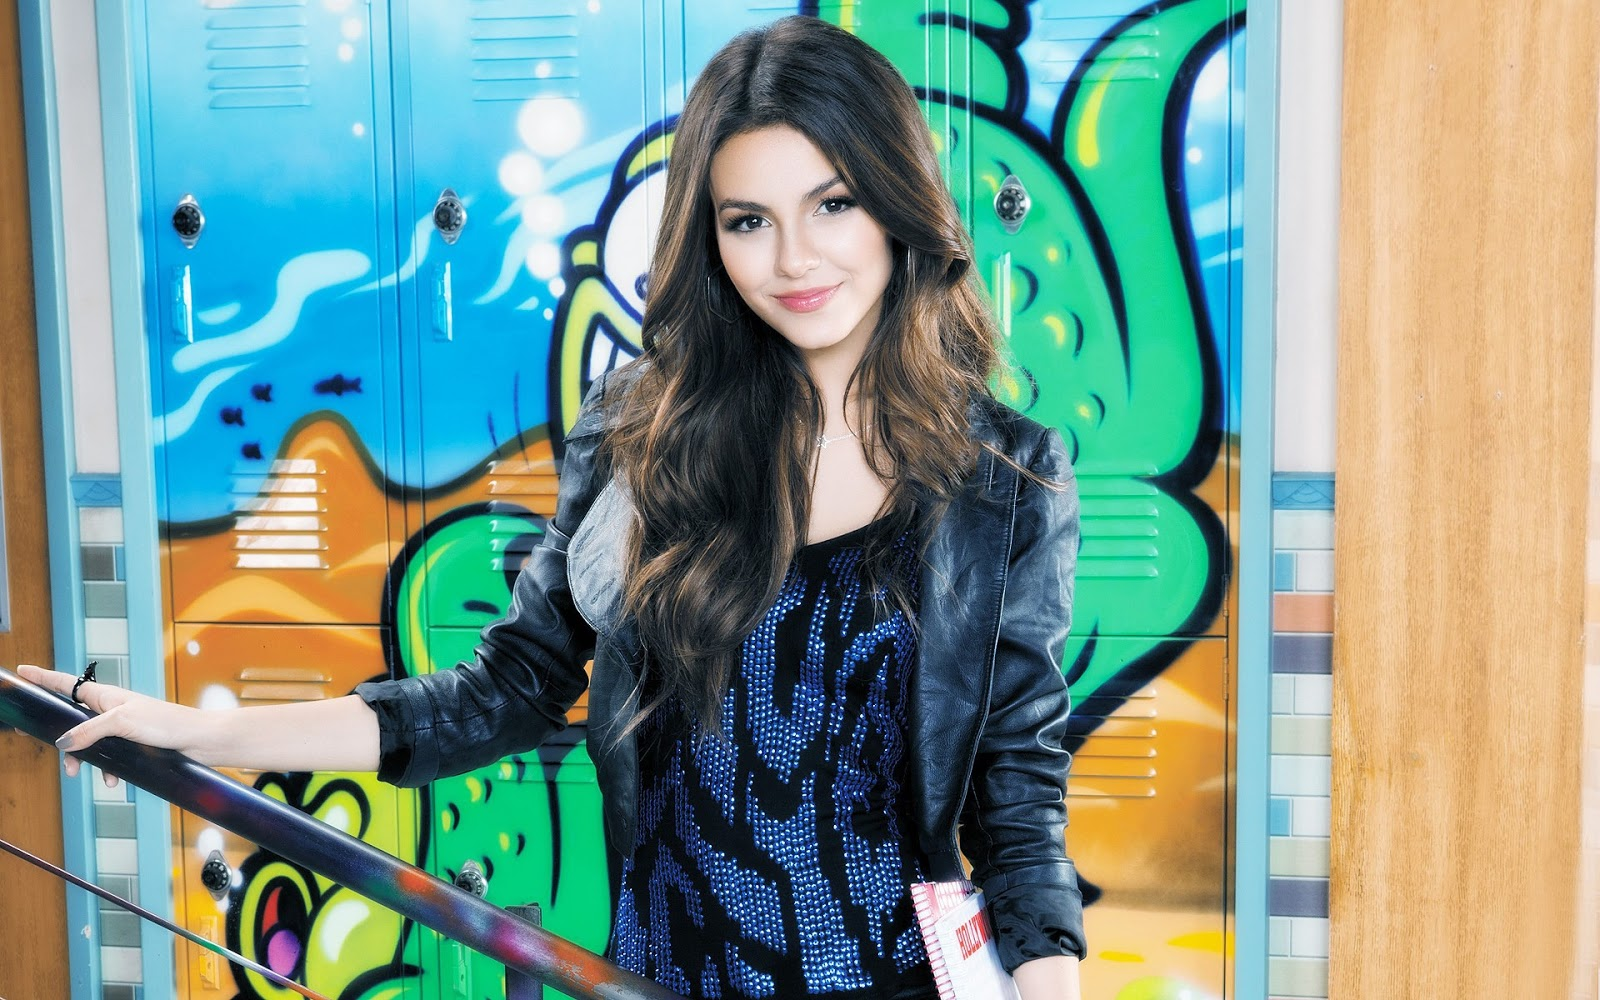 Hollywood Stars Victoria Justice hd Wallpapers 2012 1600x1000